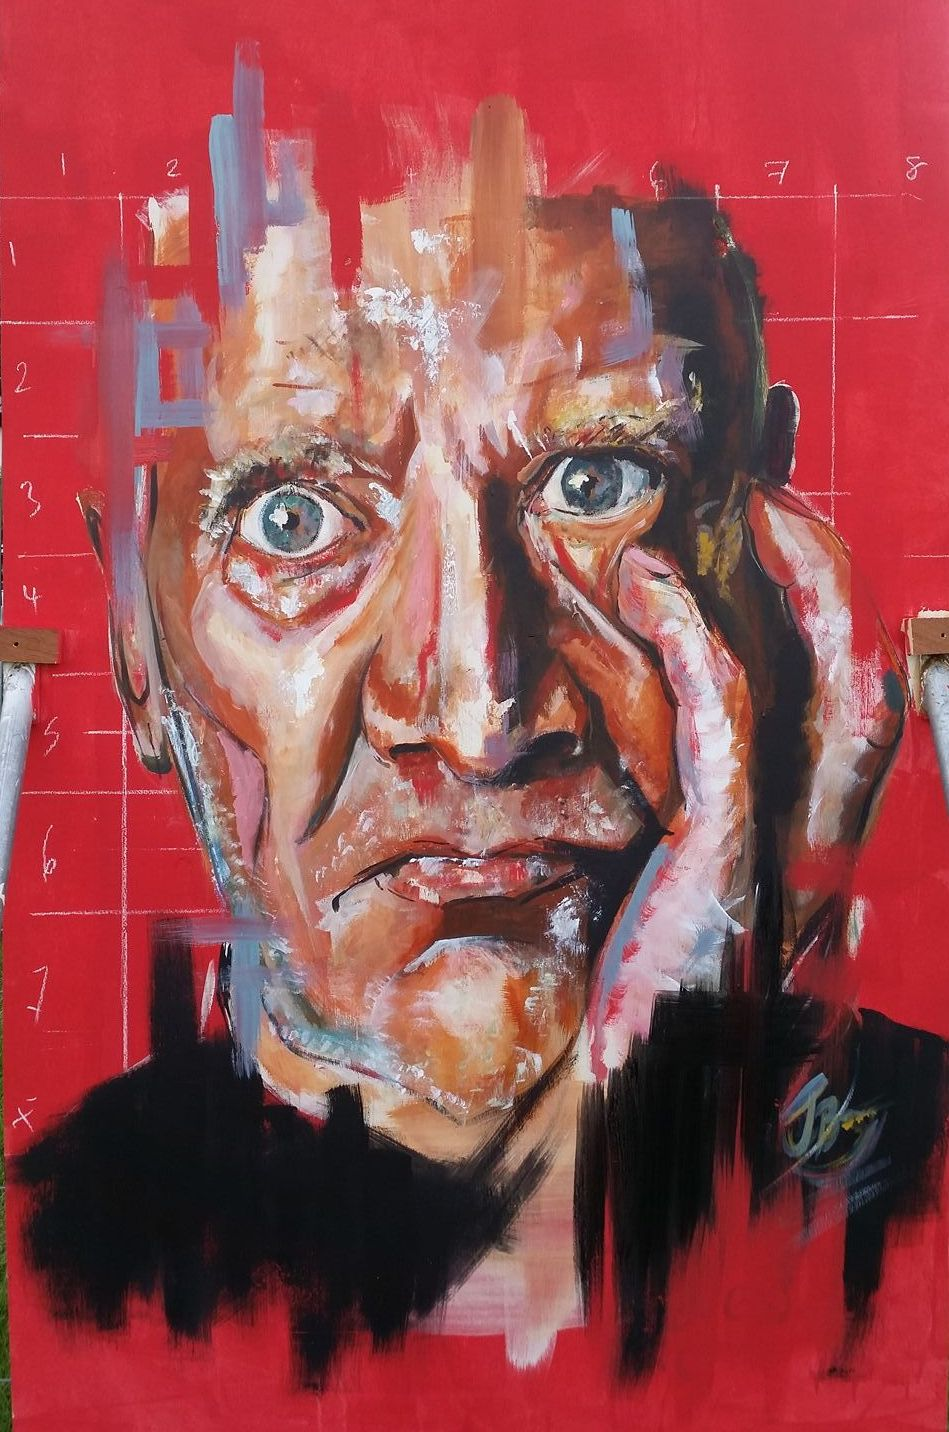 Wilko Johnson // Acrylic and Emulsion on Wood // 8x4ft // 2017